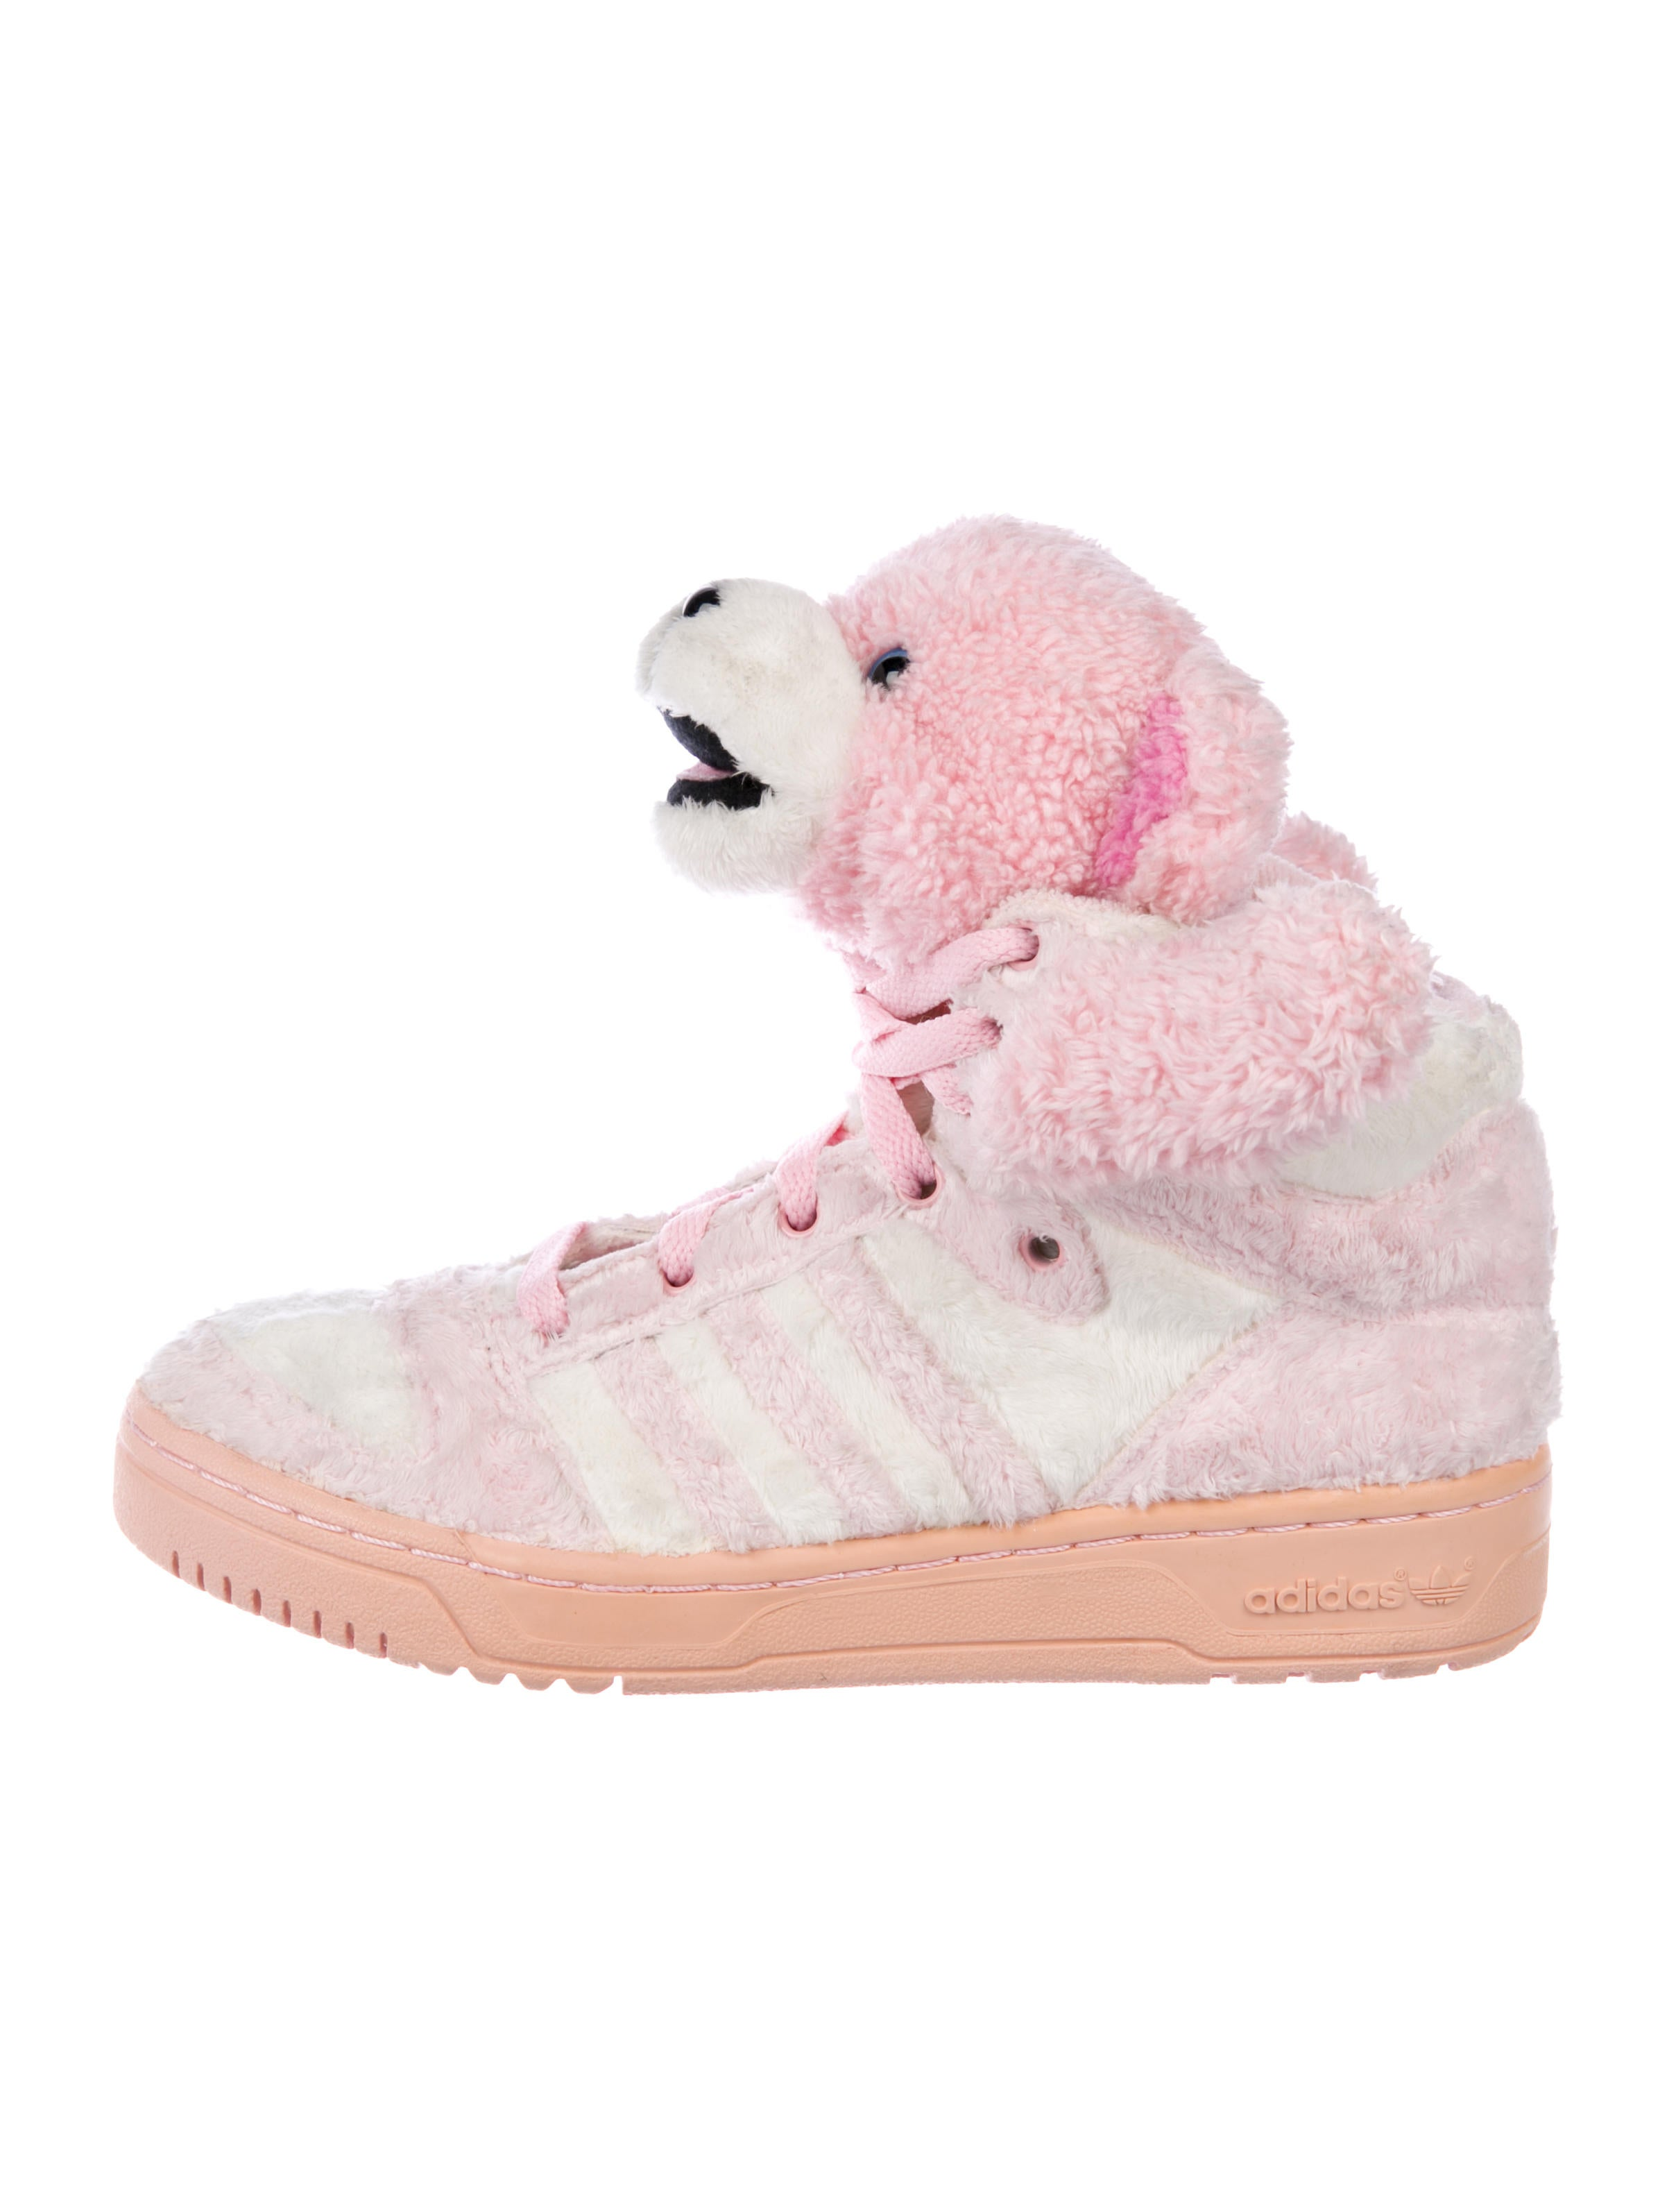 New Arrival Adidas Jeremy Scott Flowers Bear Women Shoes